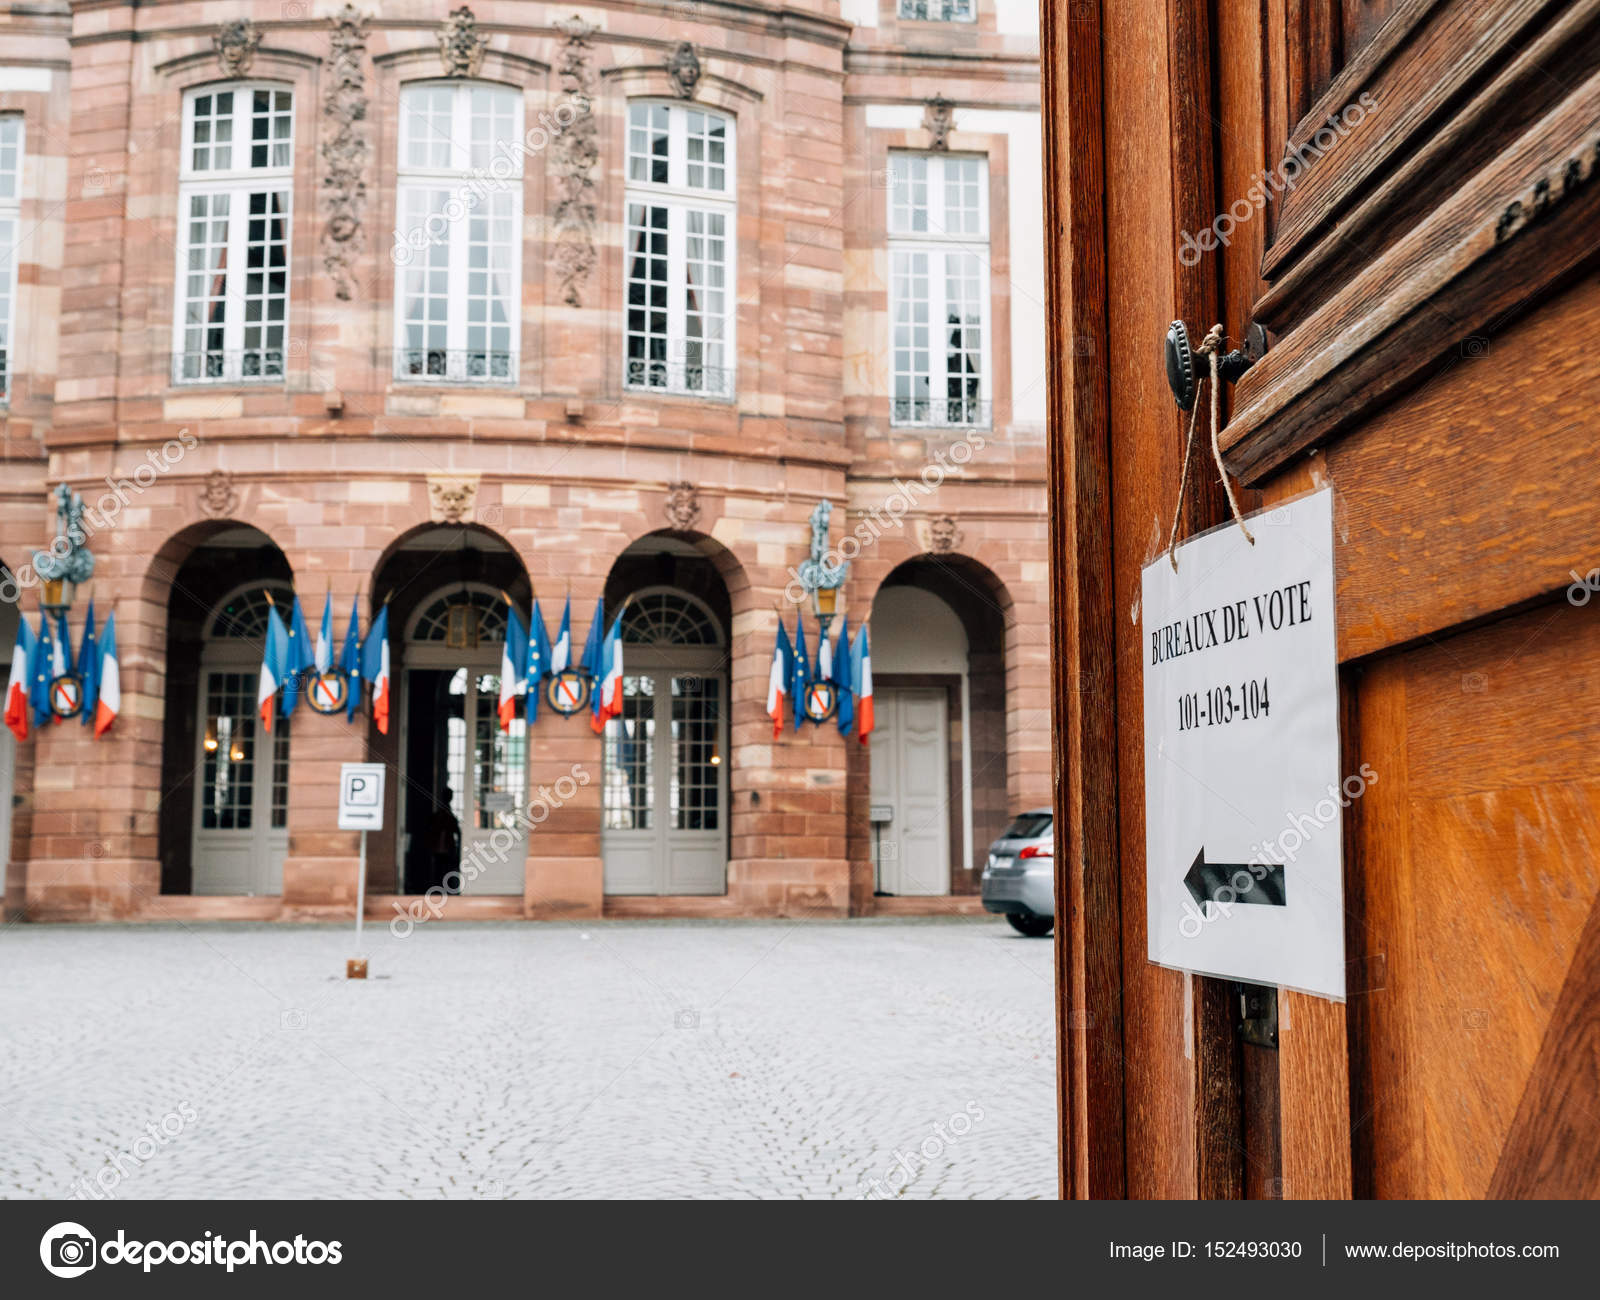 Bureau de vote polling station french city hall with flags in